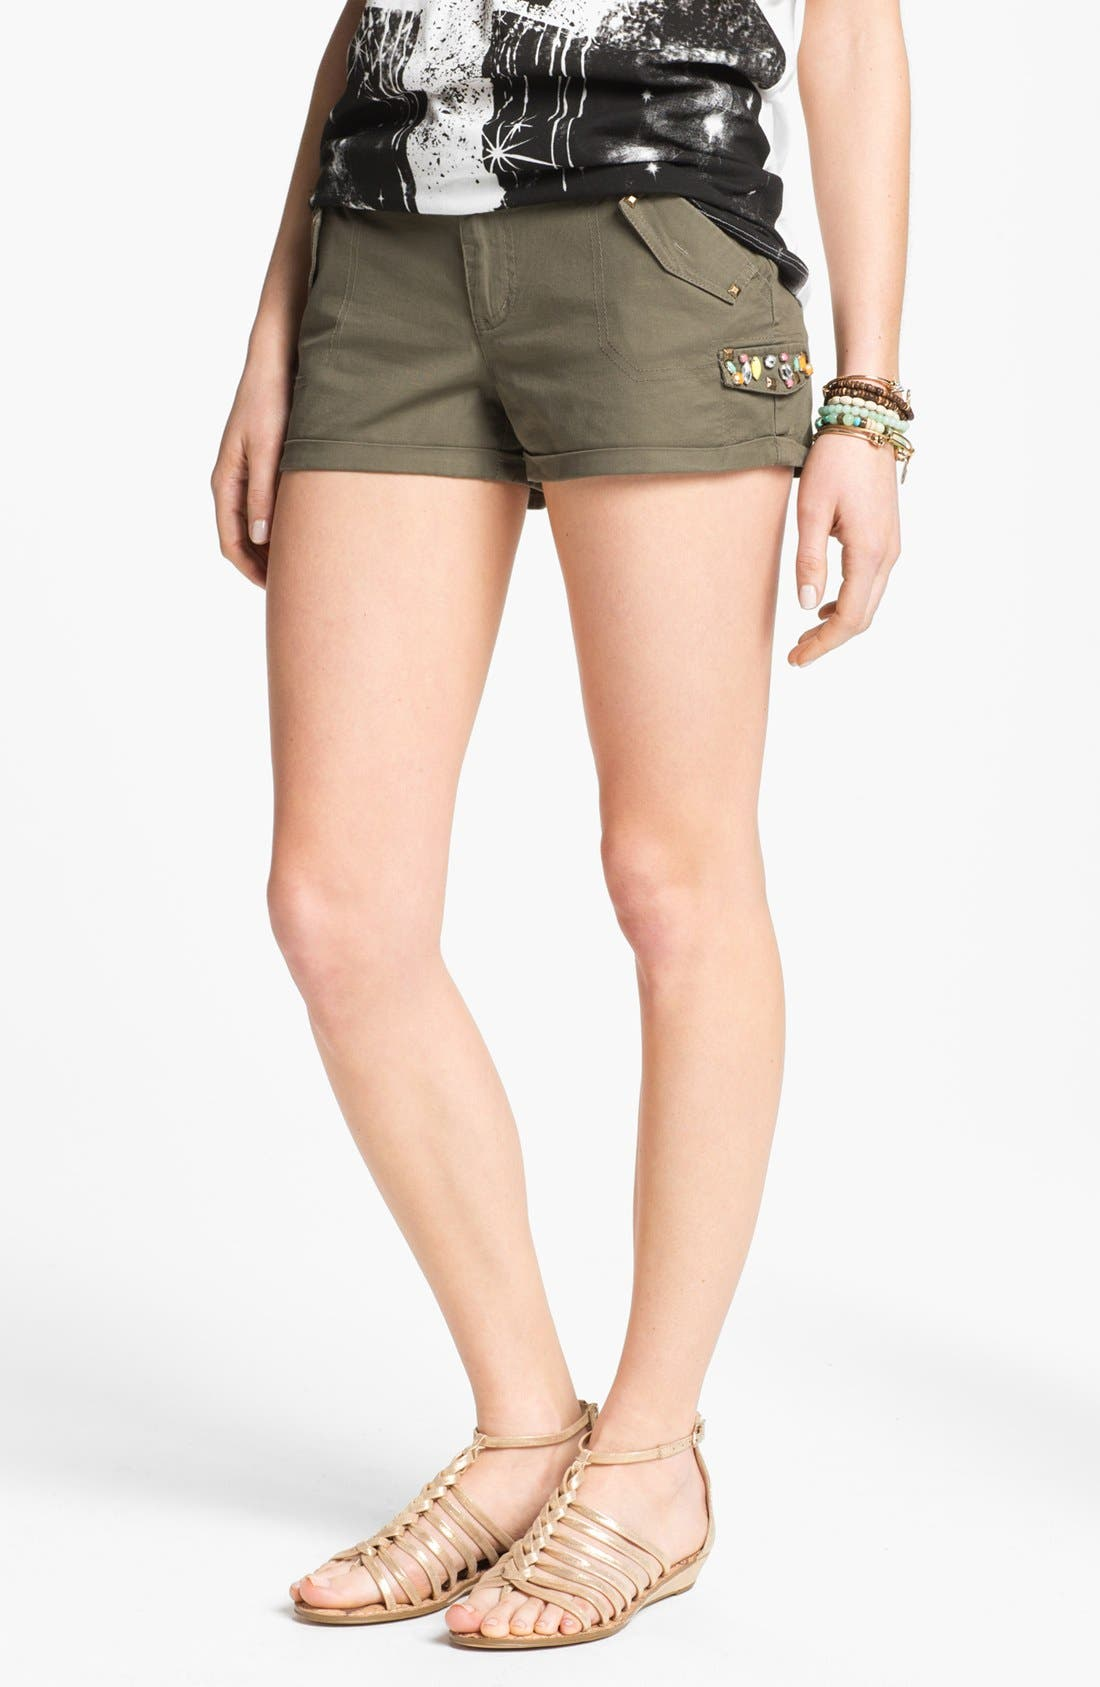 Alternate Image 1 Selected - Jolt Rhinestone Embellished Shorts (Juniors)